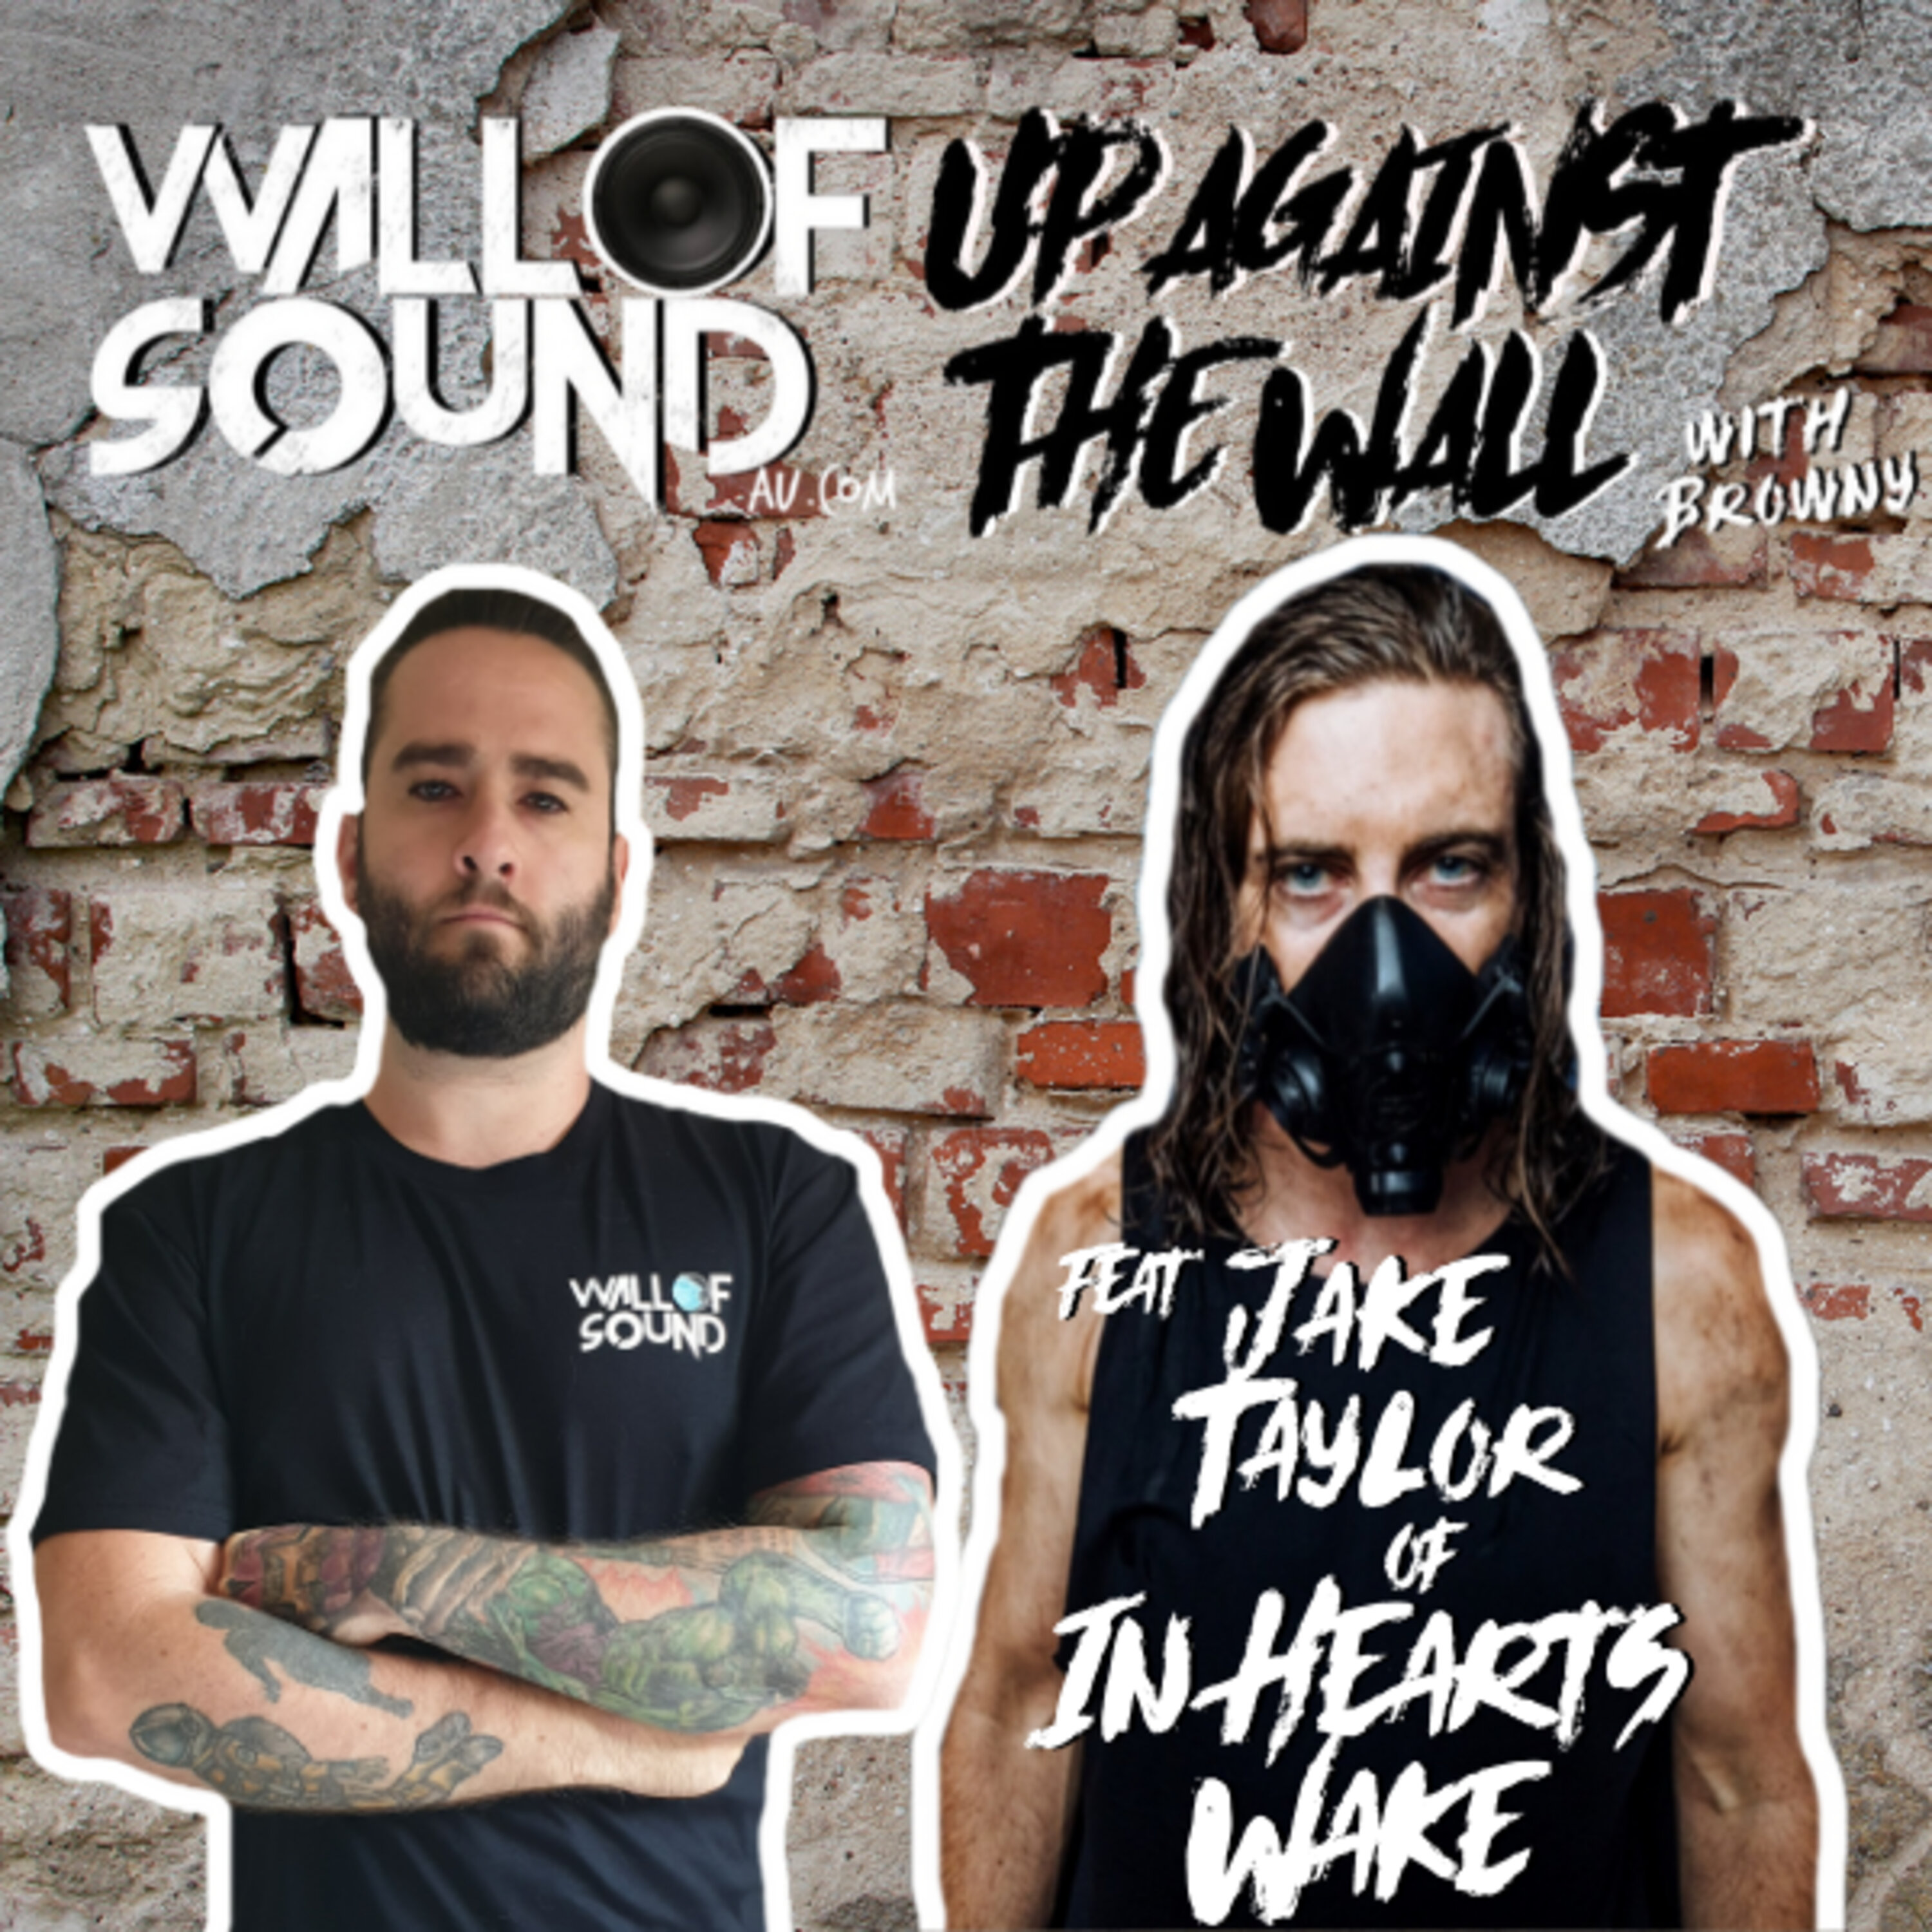 Episode #98 feat. Jake Taylor of In Hearts Wake